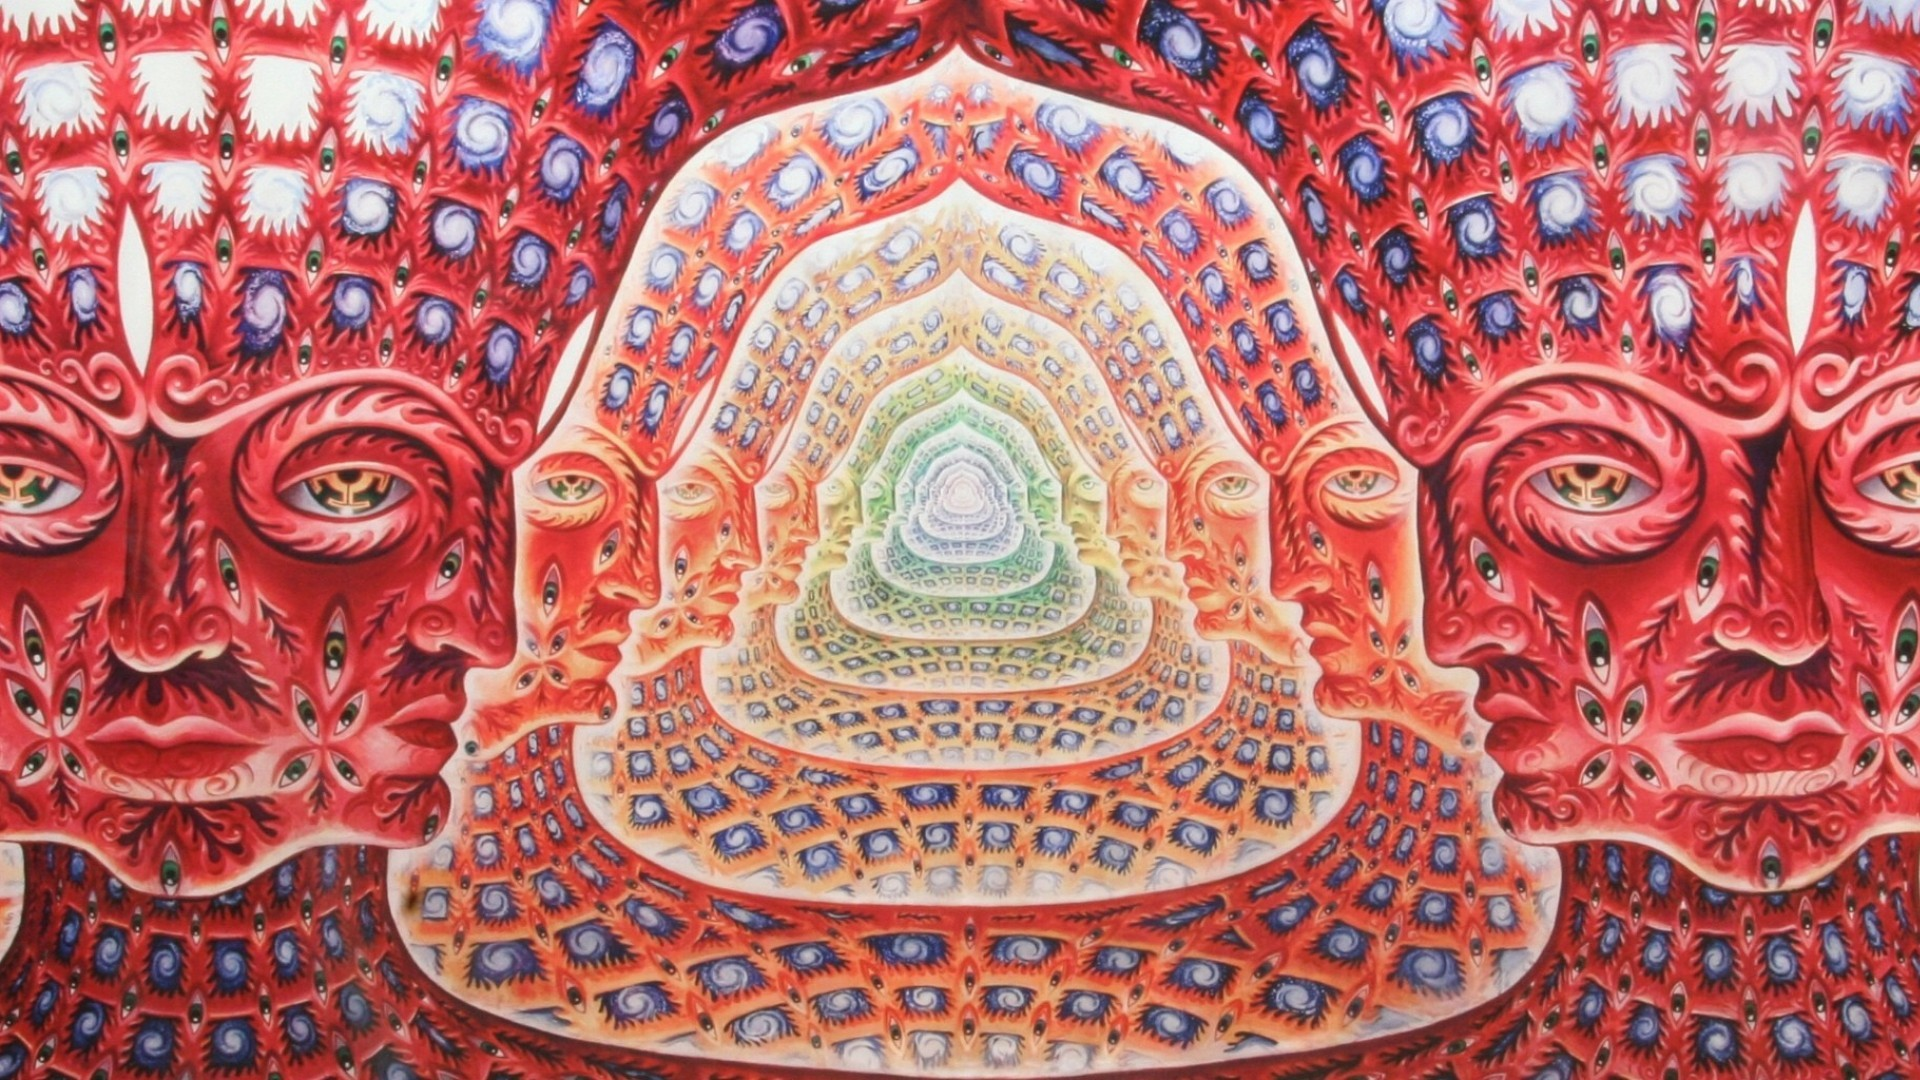 1920x1080 Wallpapers Alex Grey Tool Psychedelic Artwork Faces Panoramic .